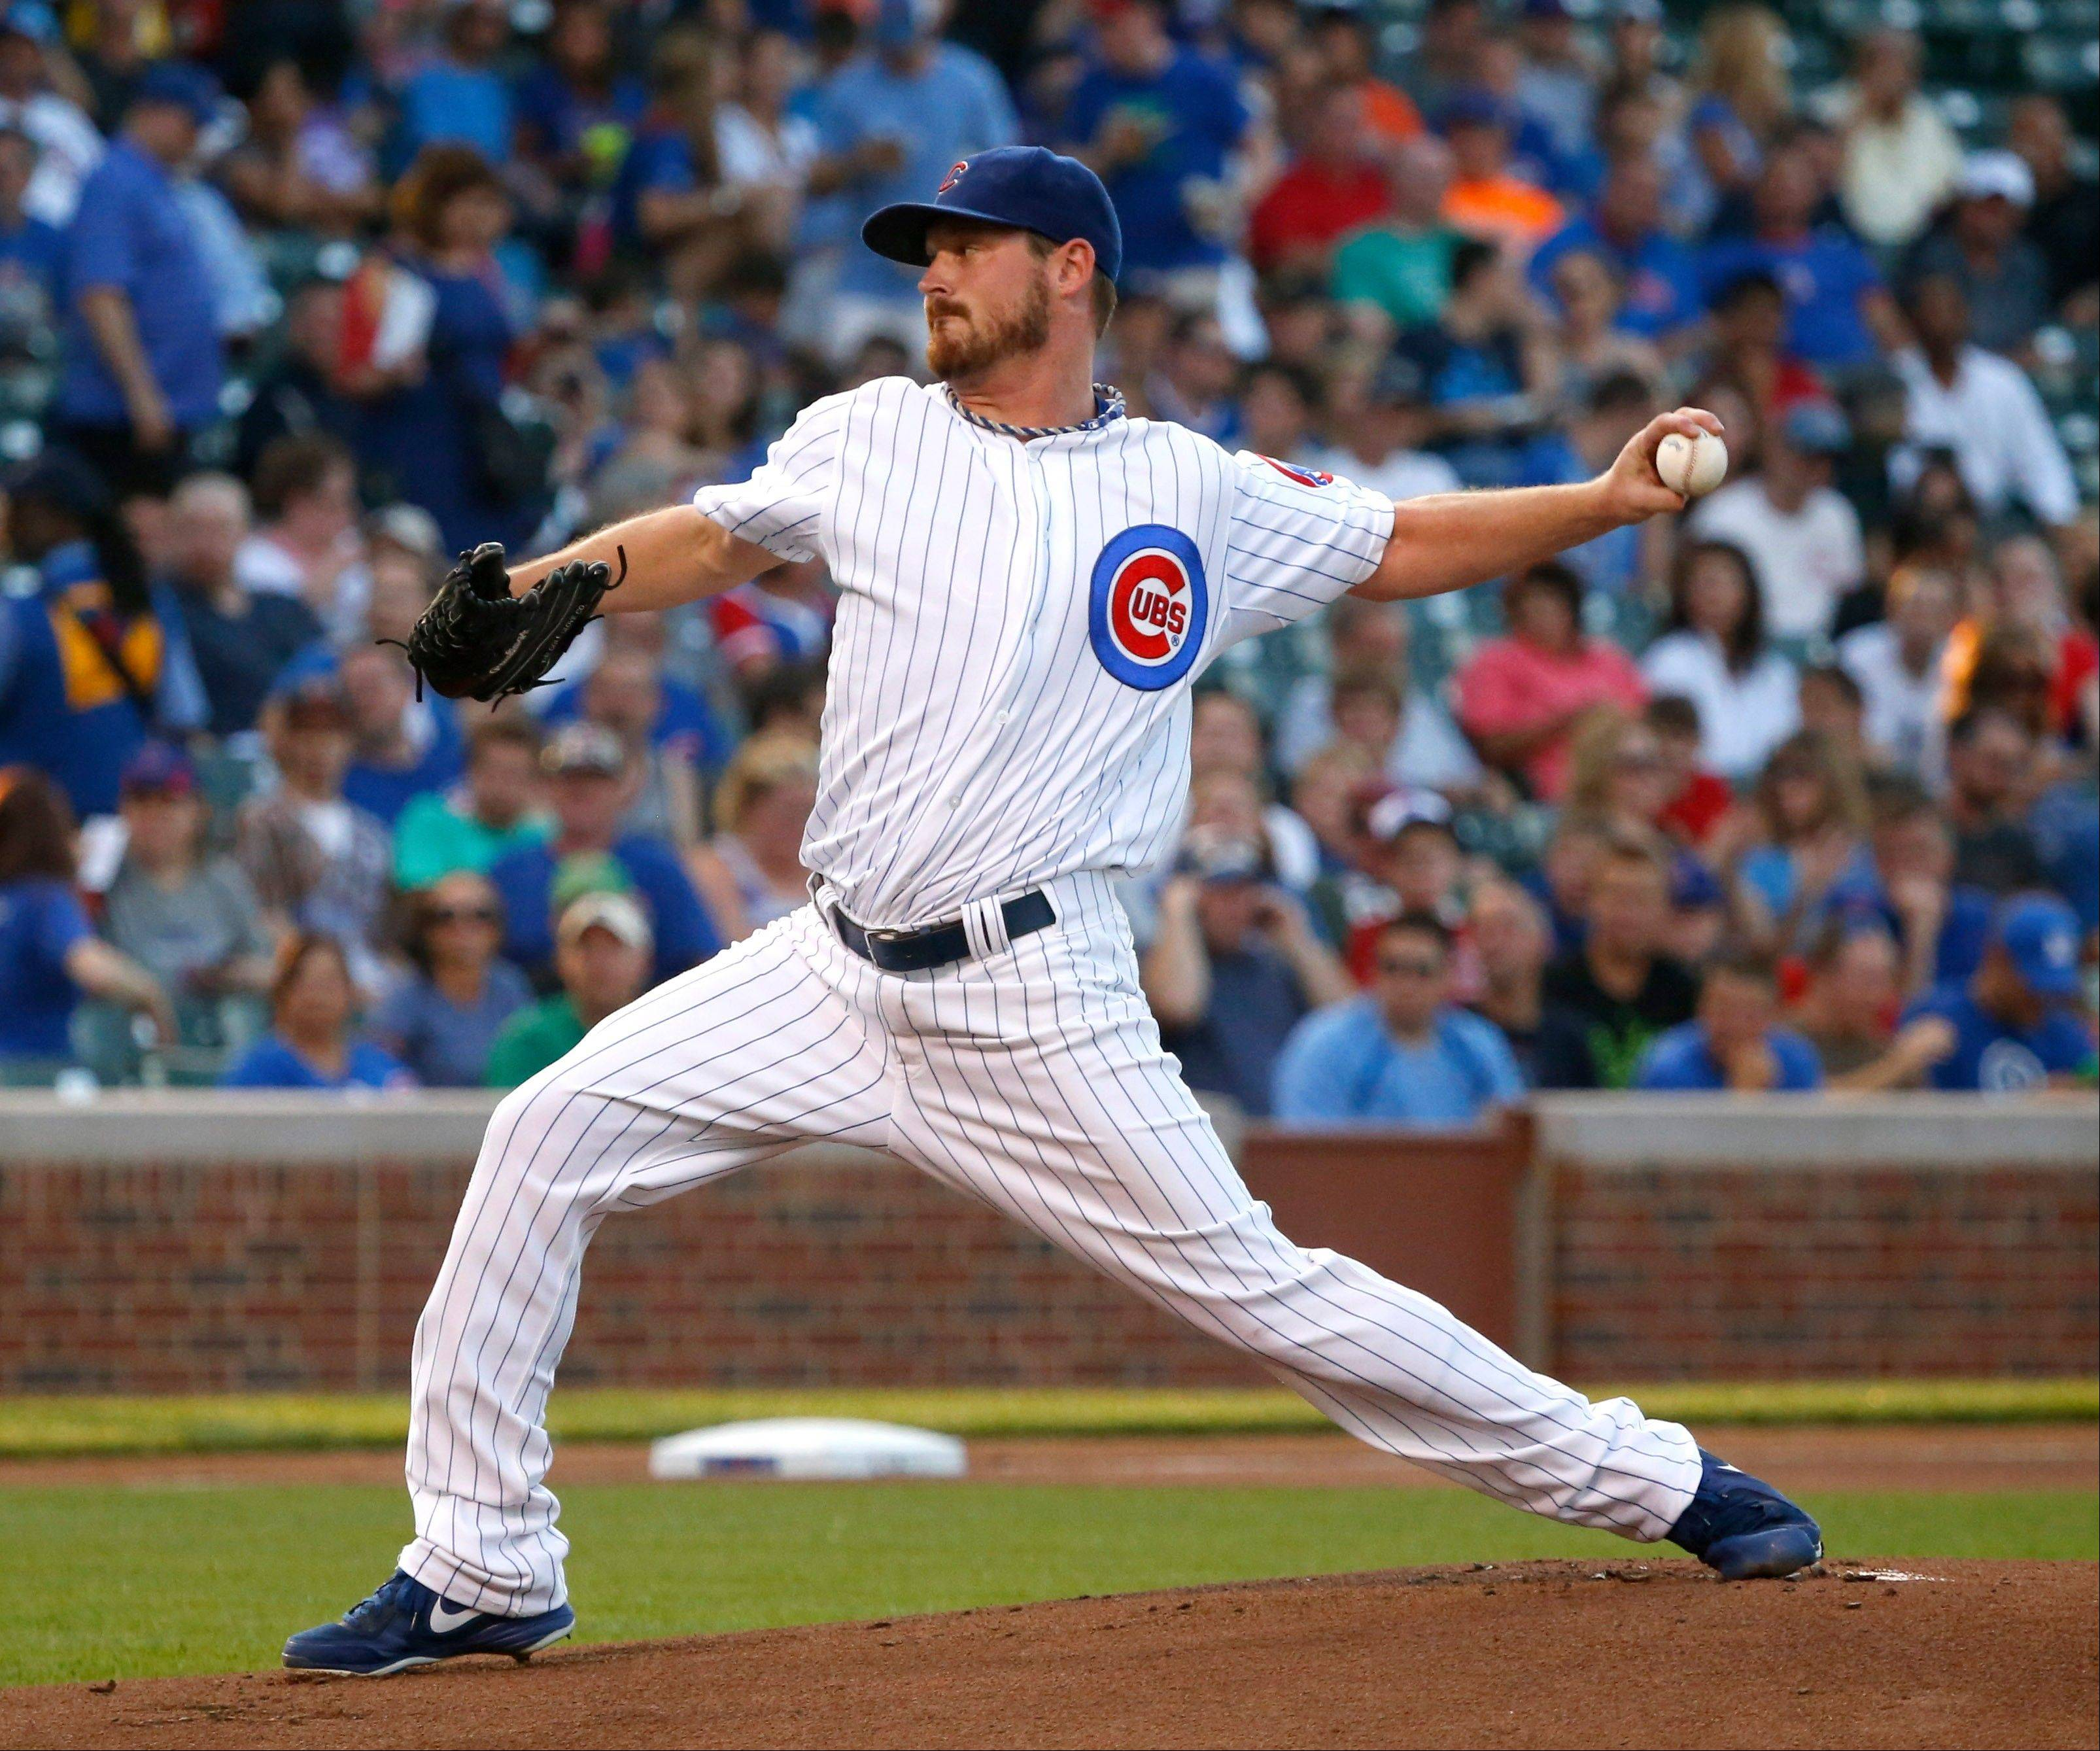 Cubs pitcher Travis Wood turned in his 17th quality start with Tuesday night's victory over the Angels at Wrigley Field.